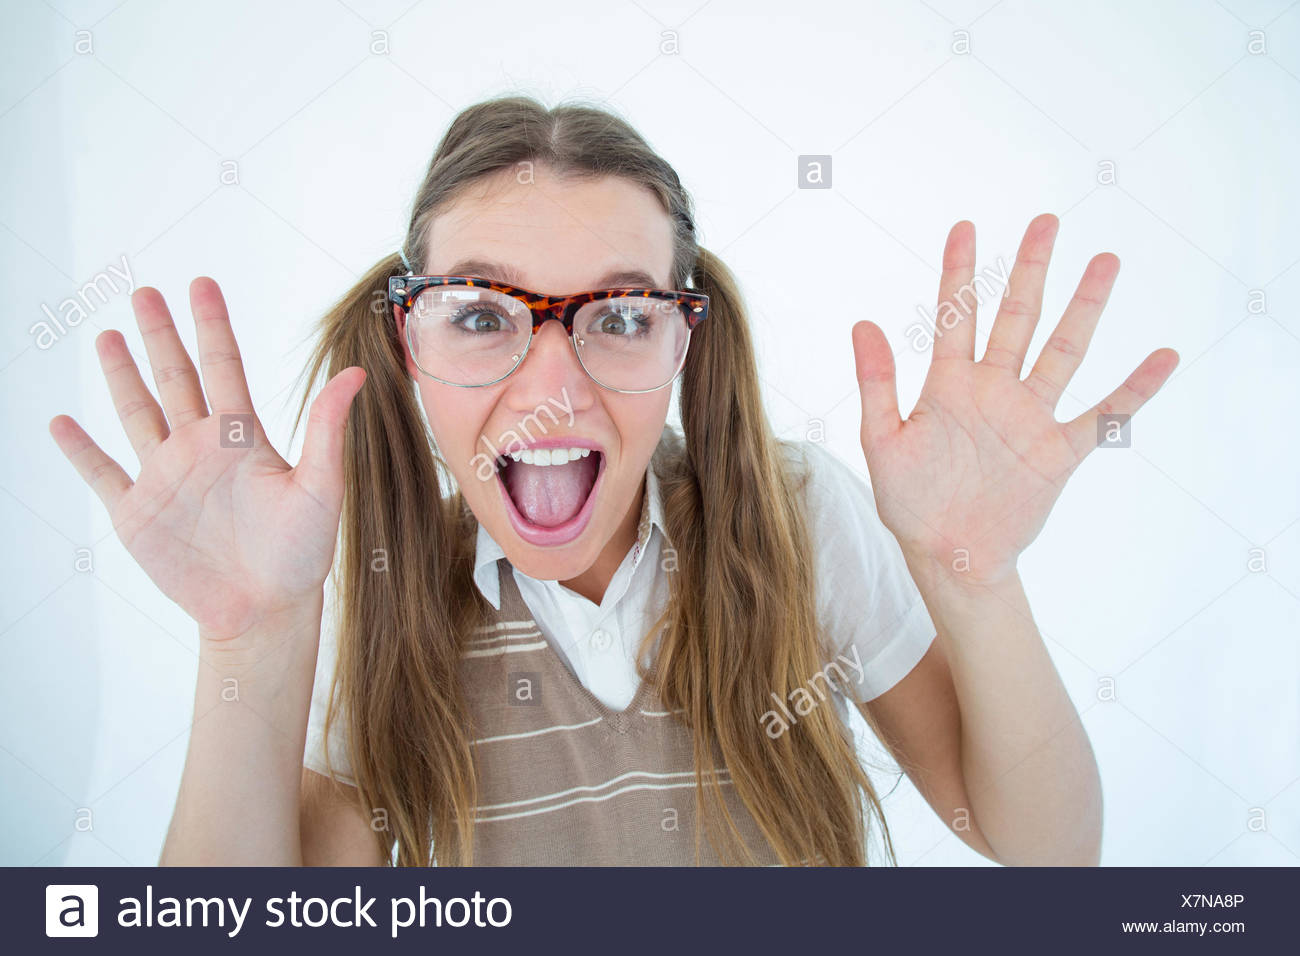 Female geeky hipster smiling at camera - Stock Image